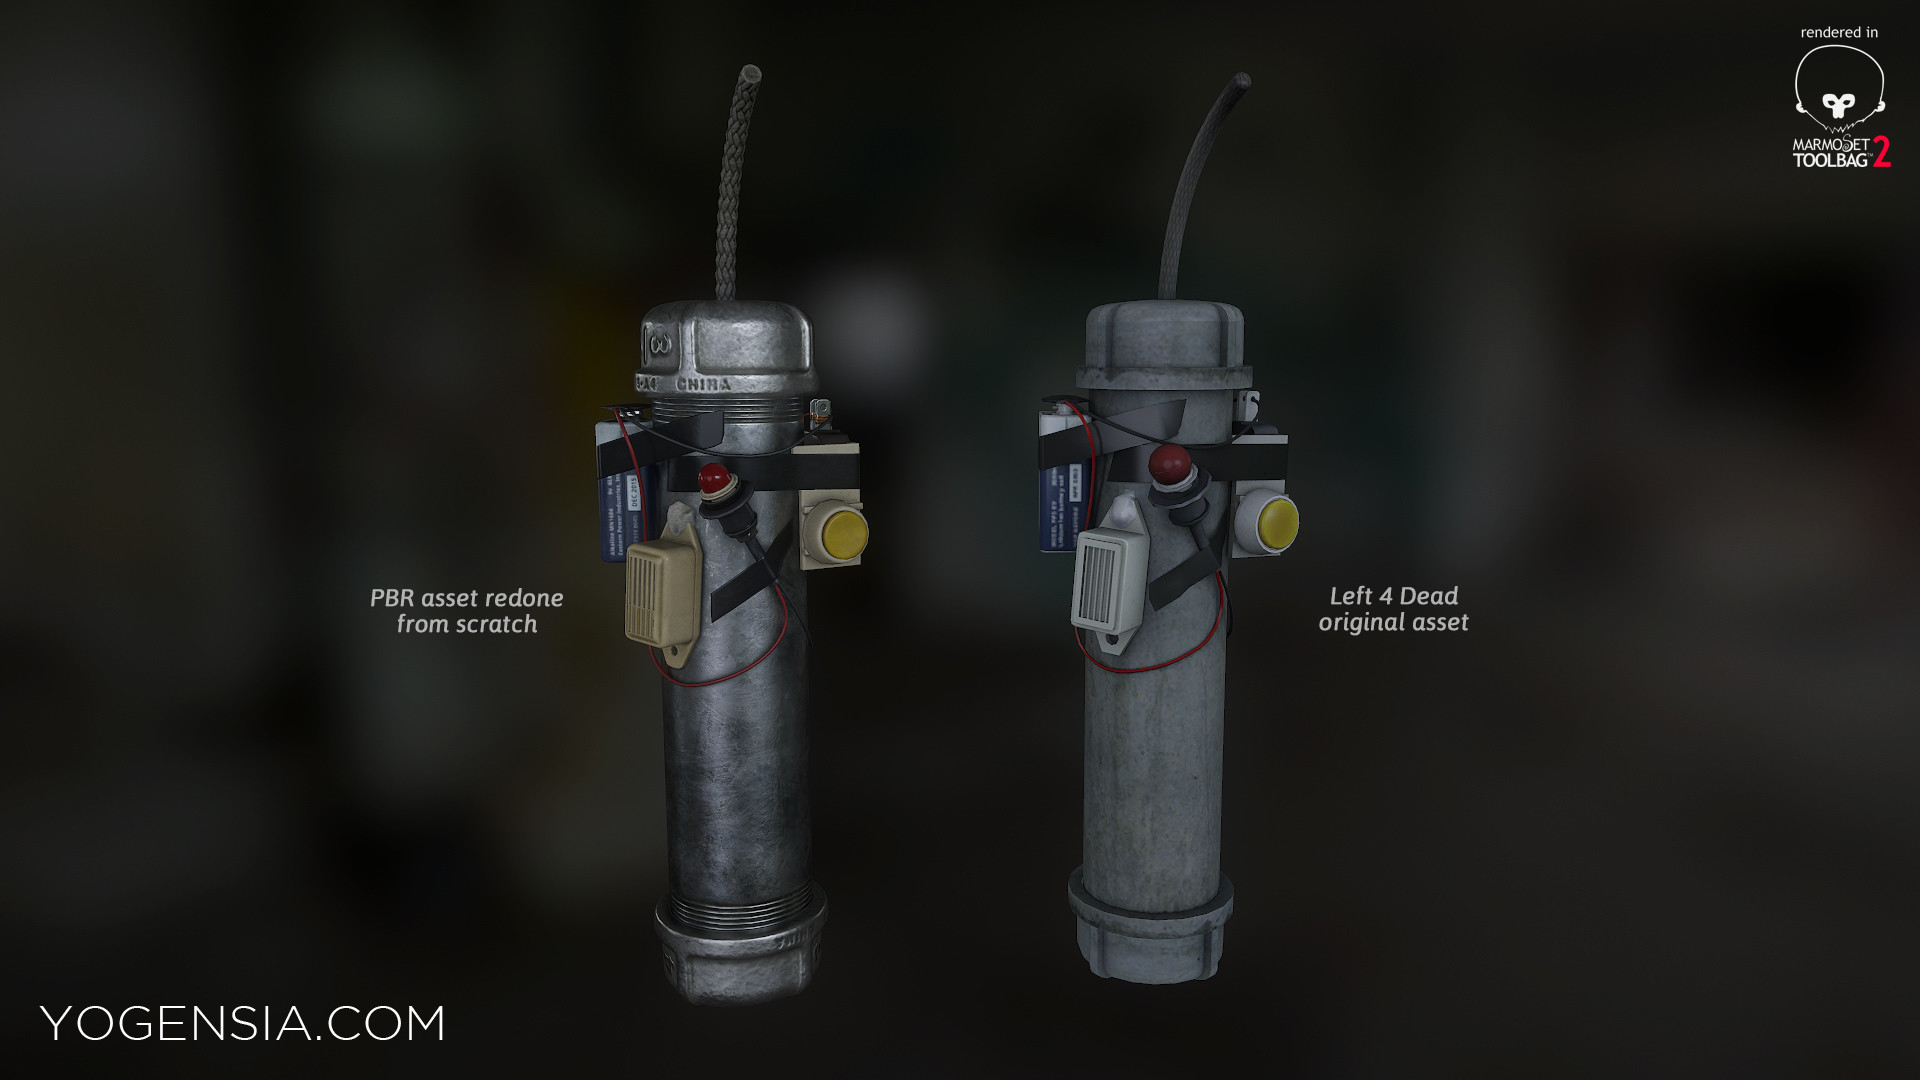 ArtStation - Pipebomb remake (from Left 4 Dead), Yogen Yogensia